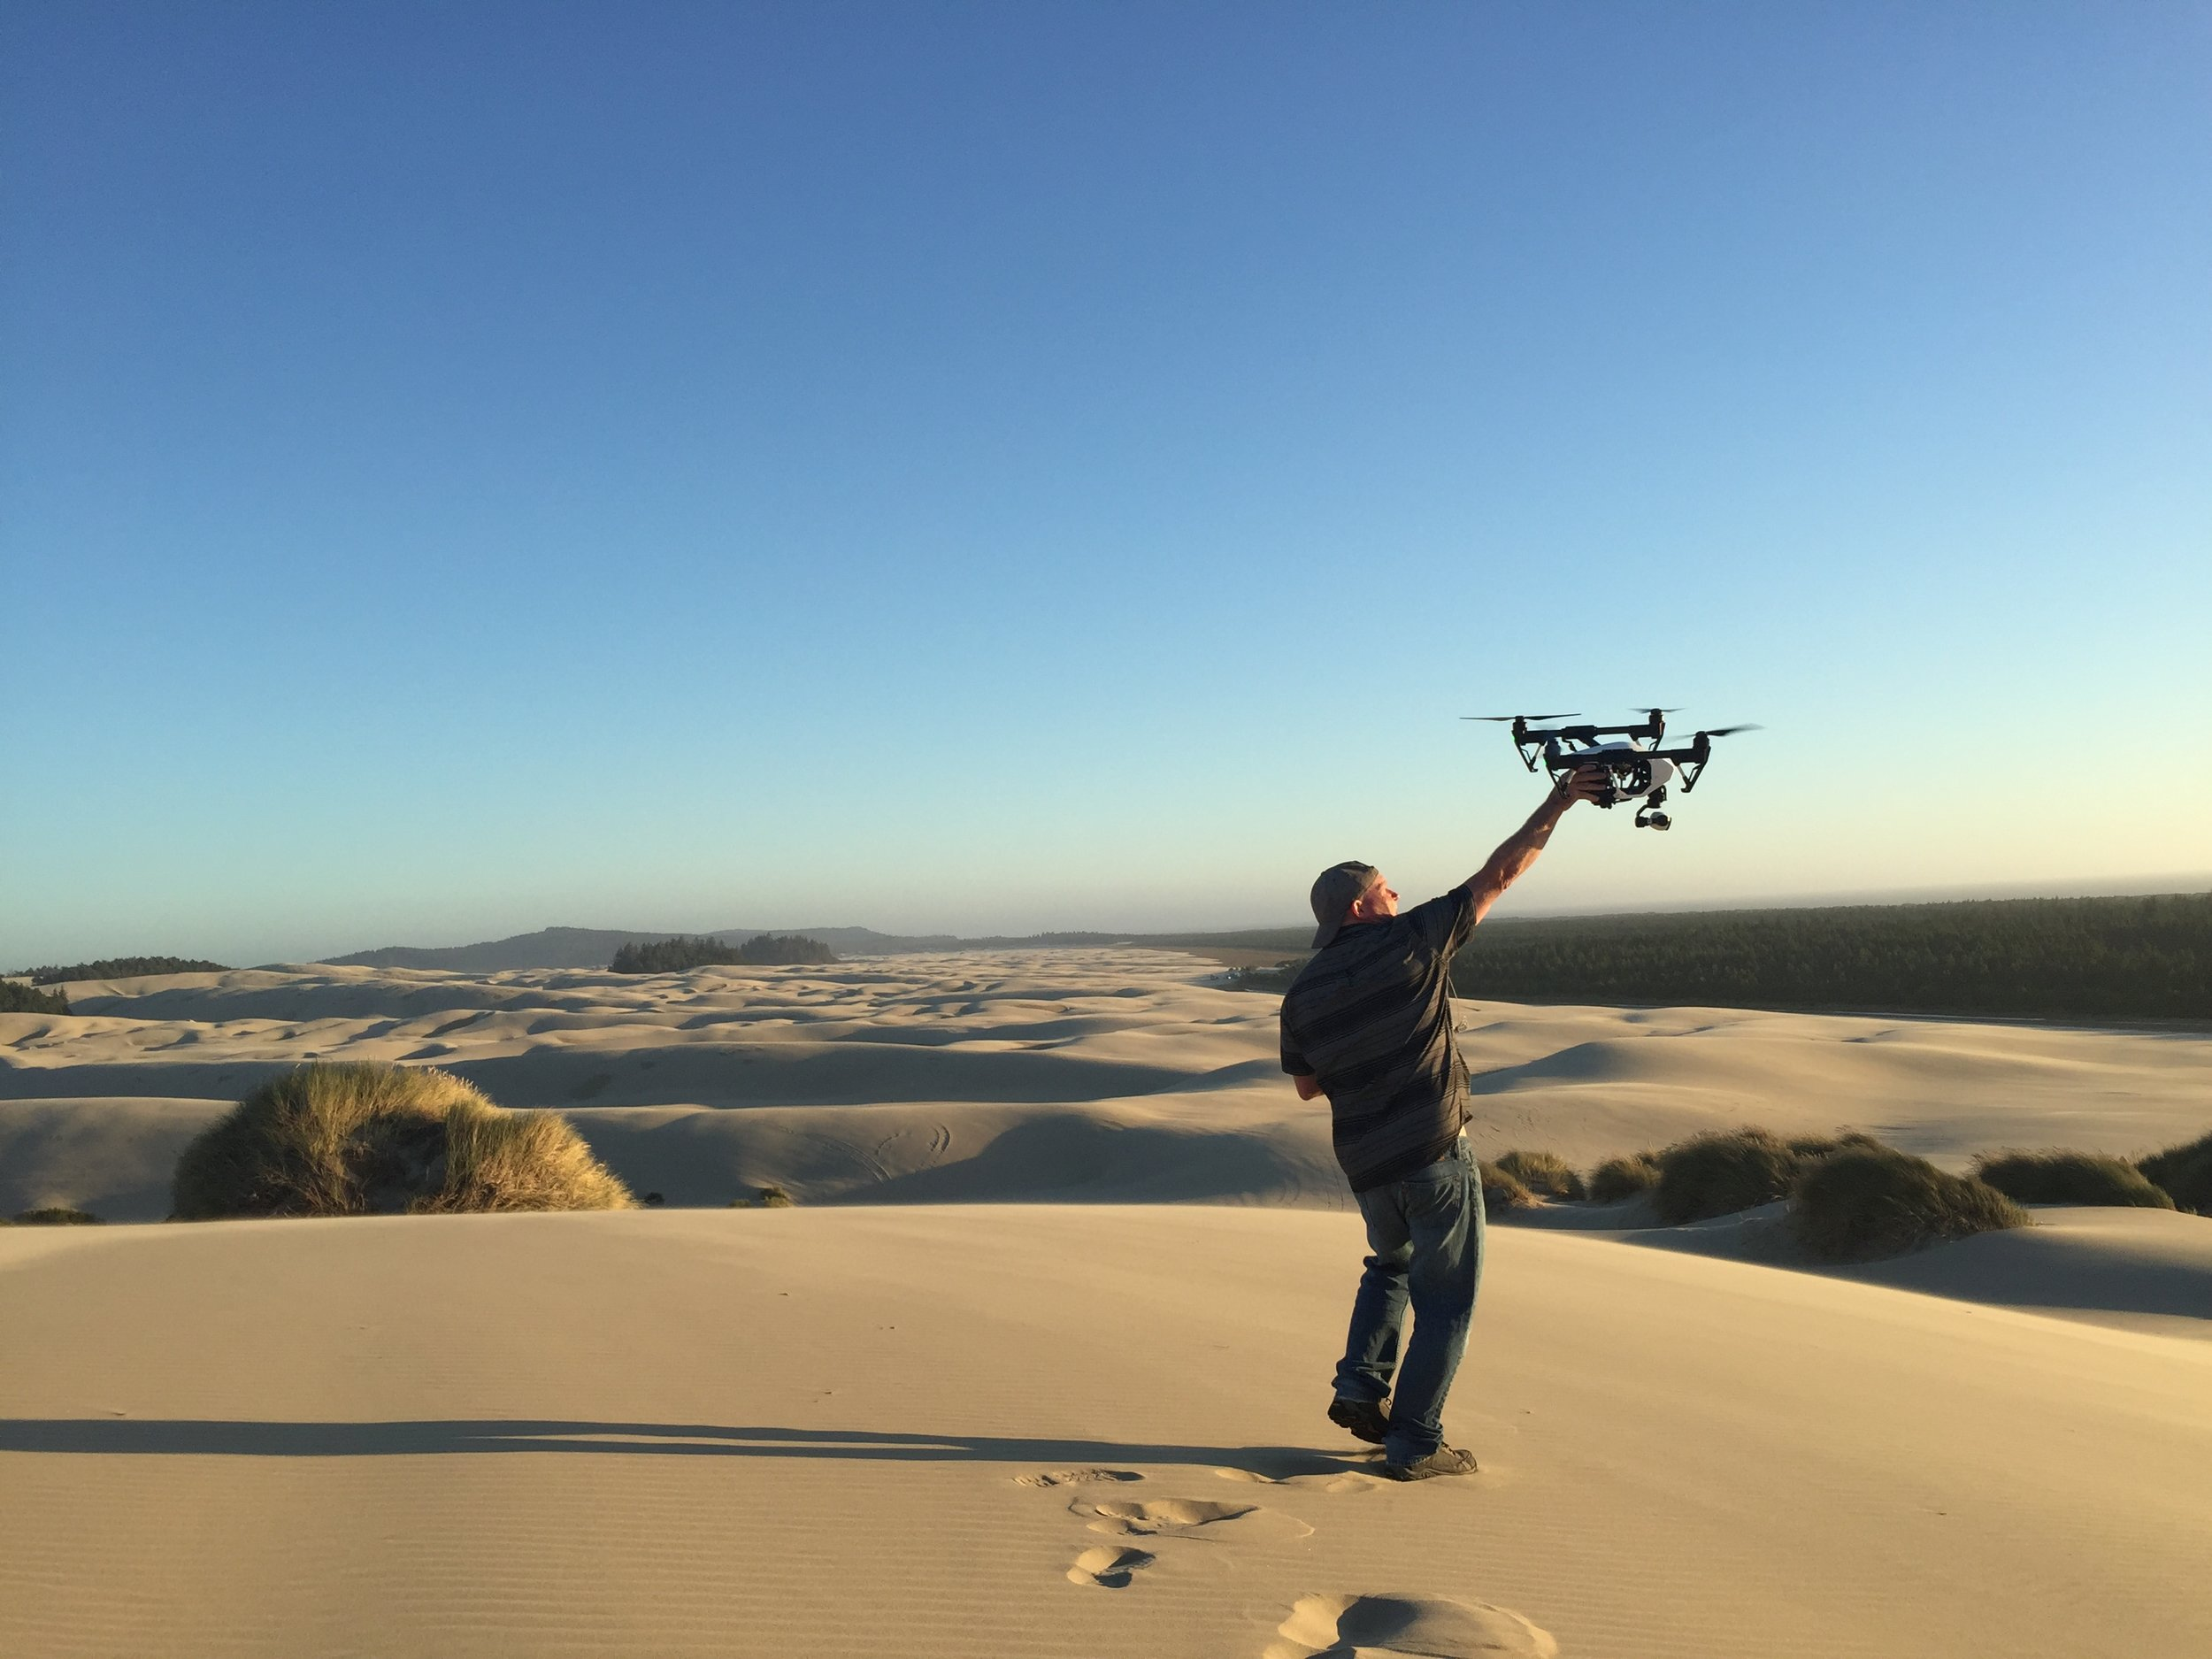 Drone on the dunes